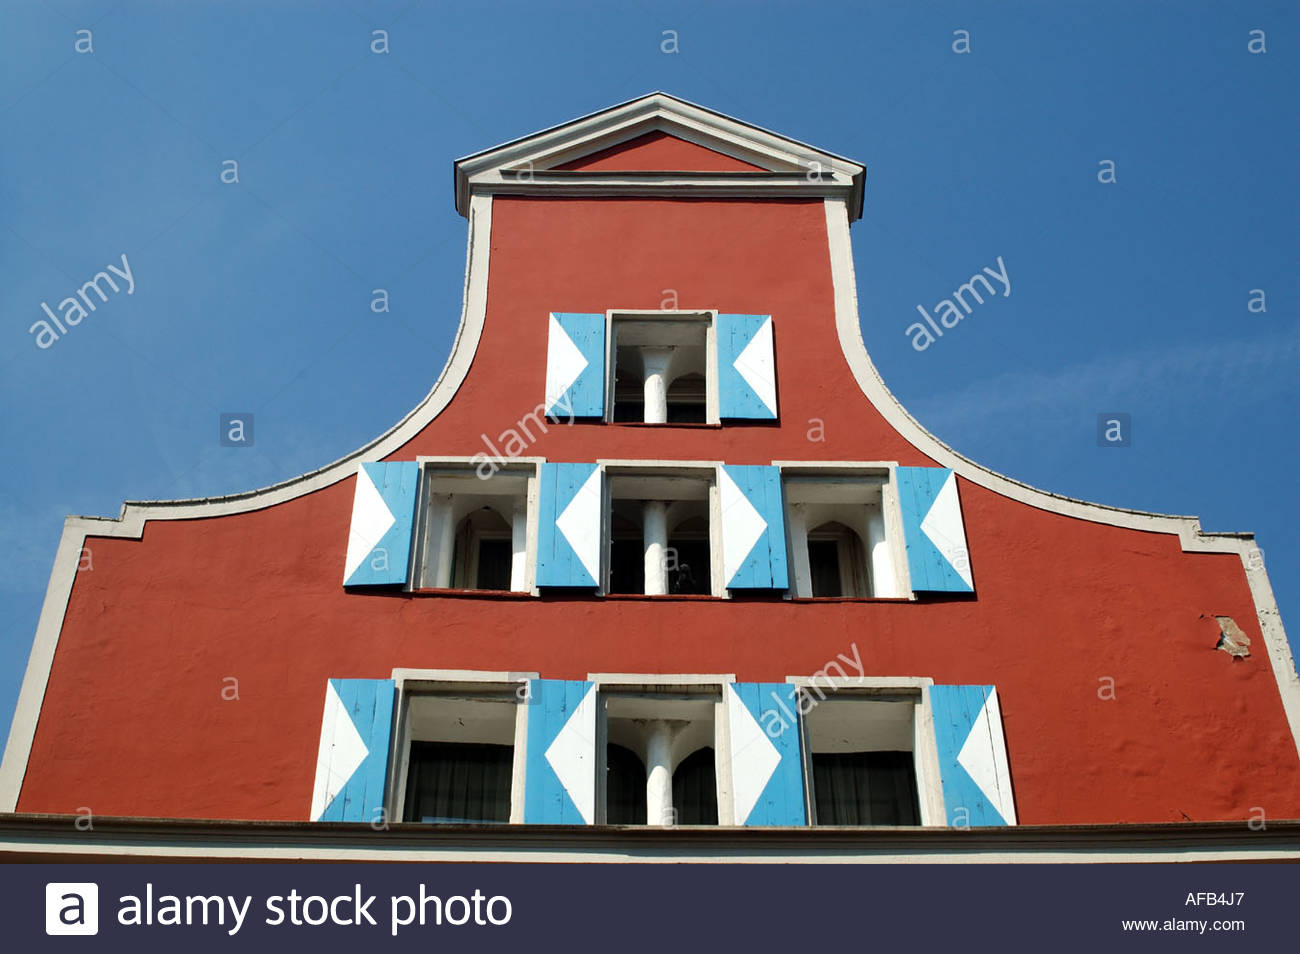 Wismar Germany Gables of houses in the Altstadt. - Stock Image